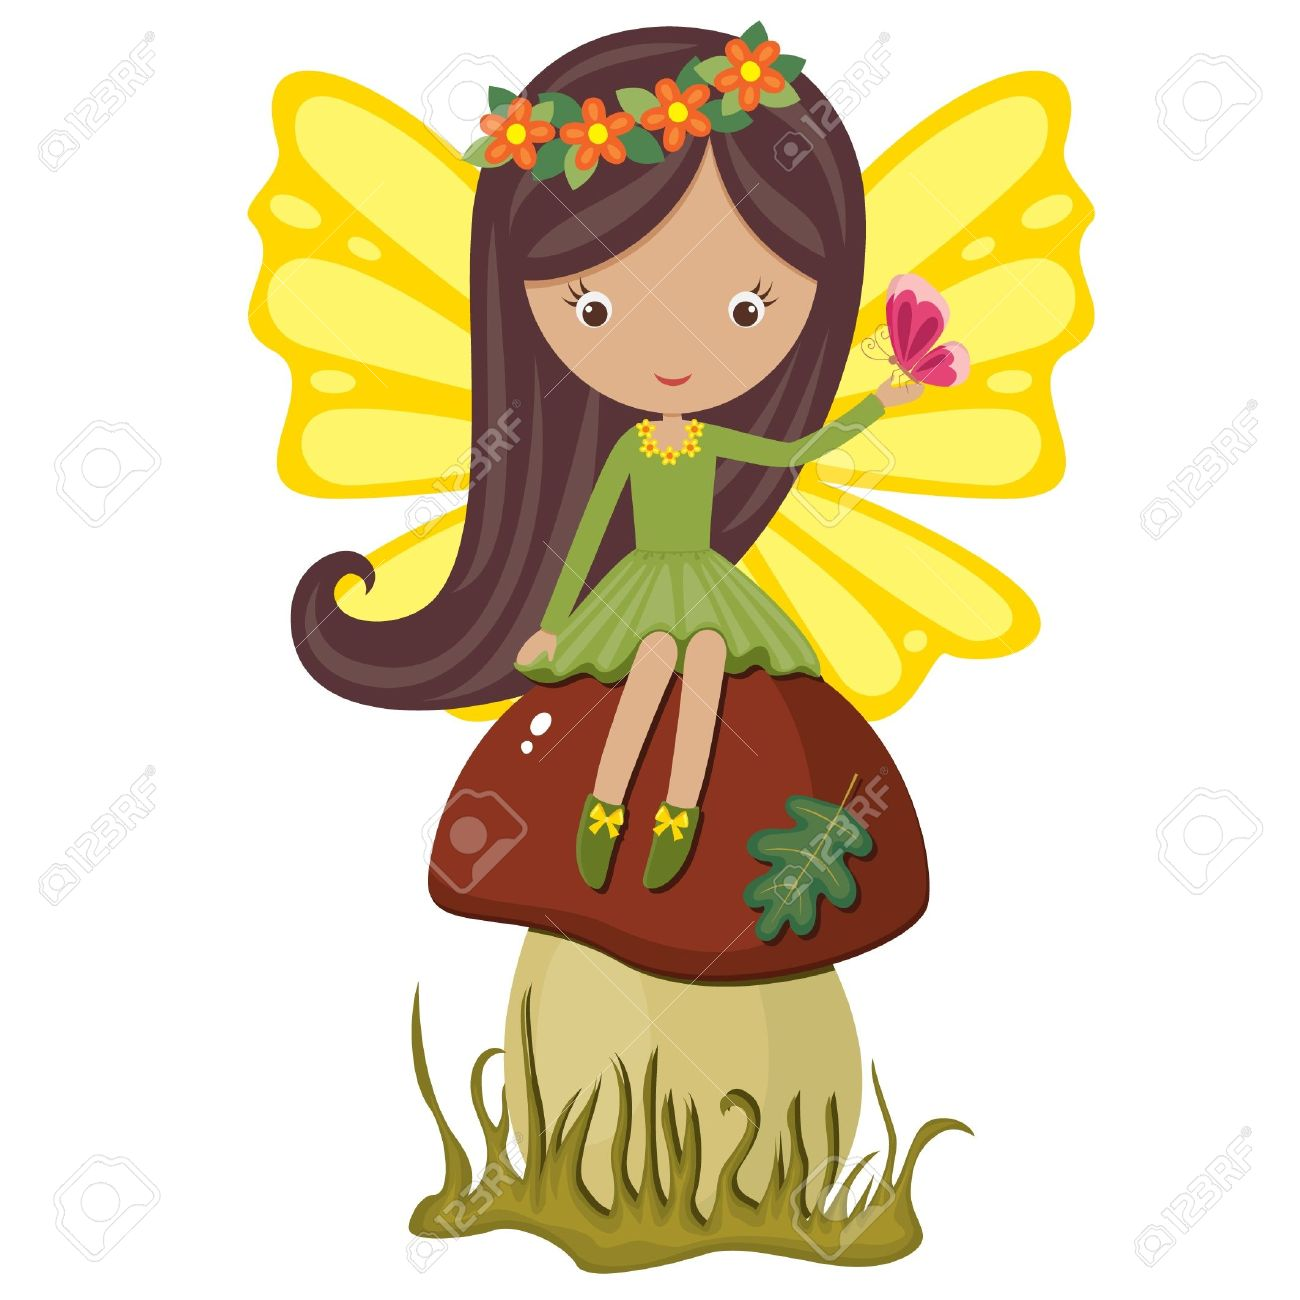 fairy garden clipart at getdrawings com free for personal use rh getdrawings com fairy wings images clip art free tooth fairy clipart images